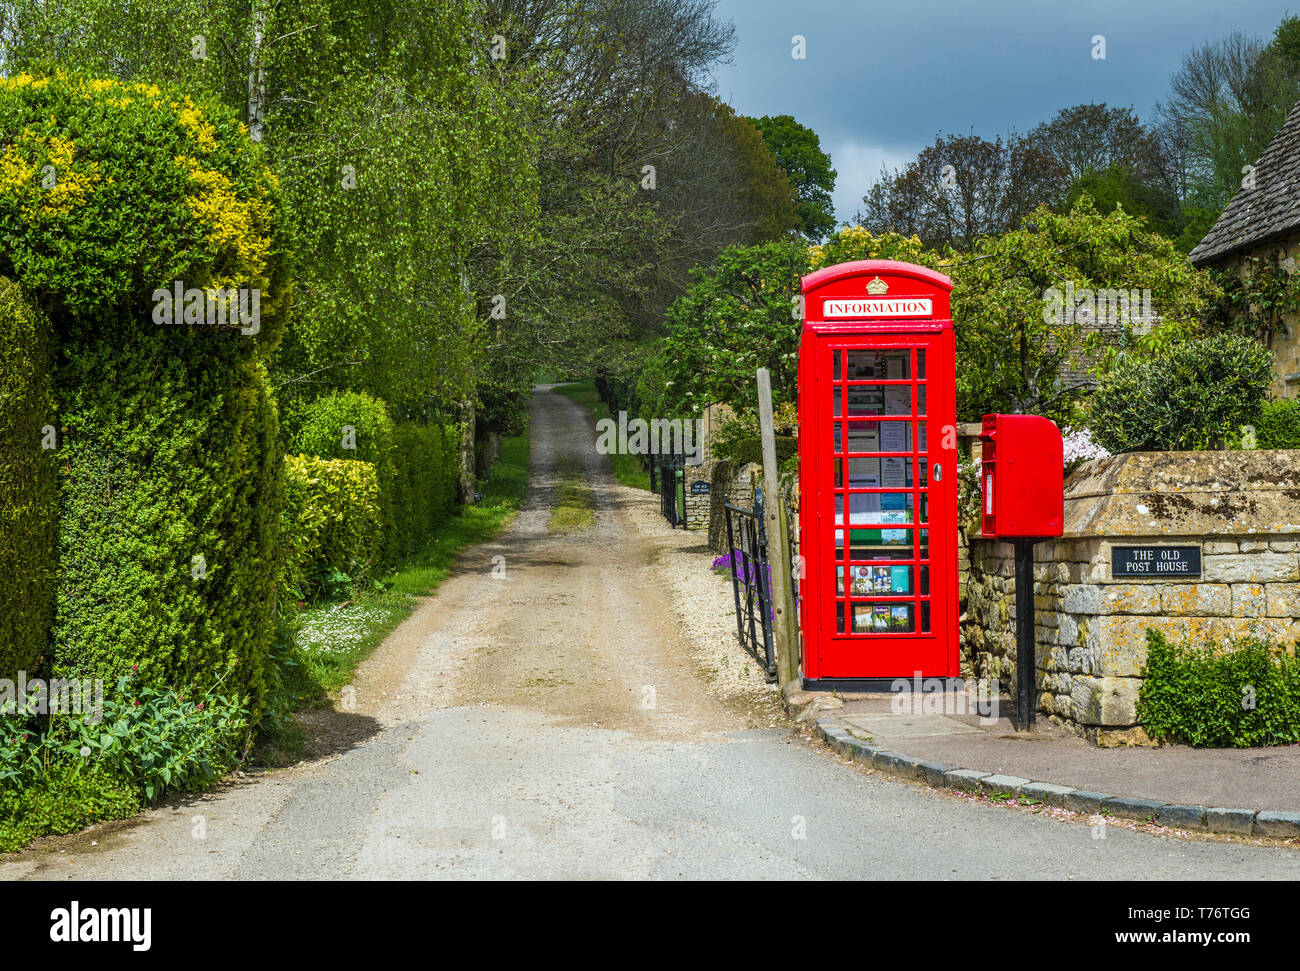 The Cotswold Village of Stanton, near Broadway, showing a lane with a red telephone box and red letterbox. The phone box contains visitor information. - Stock Image